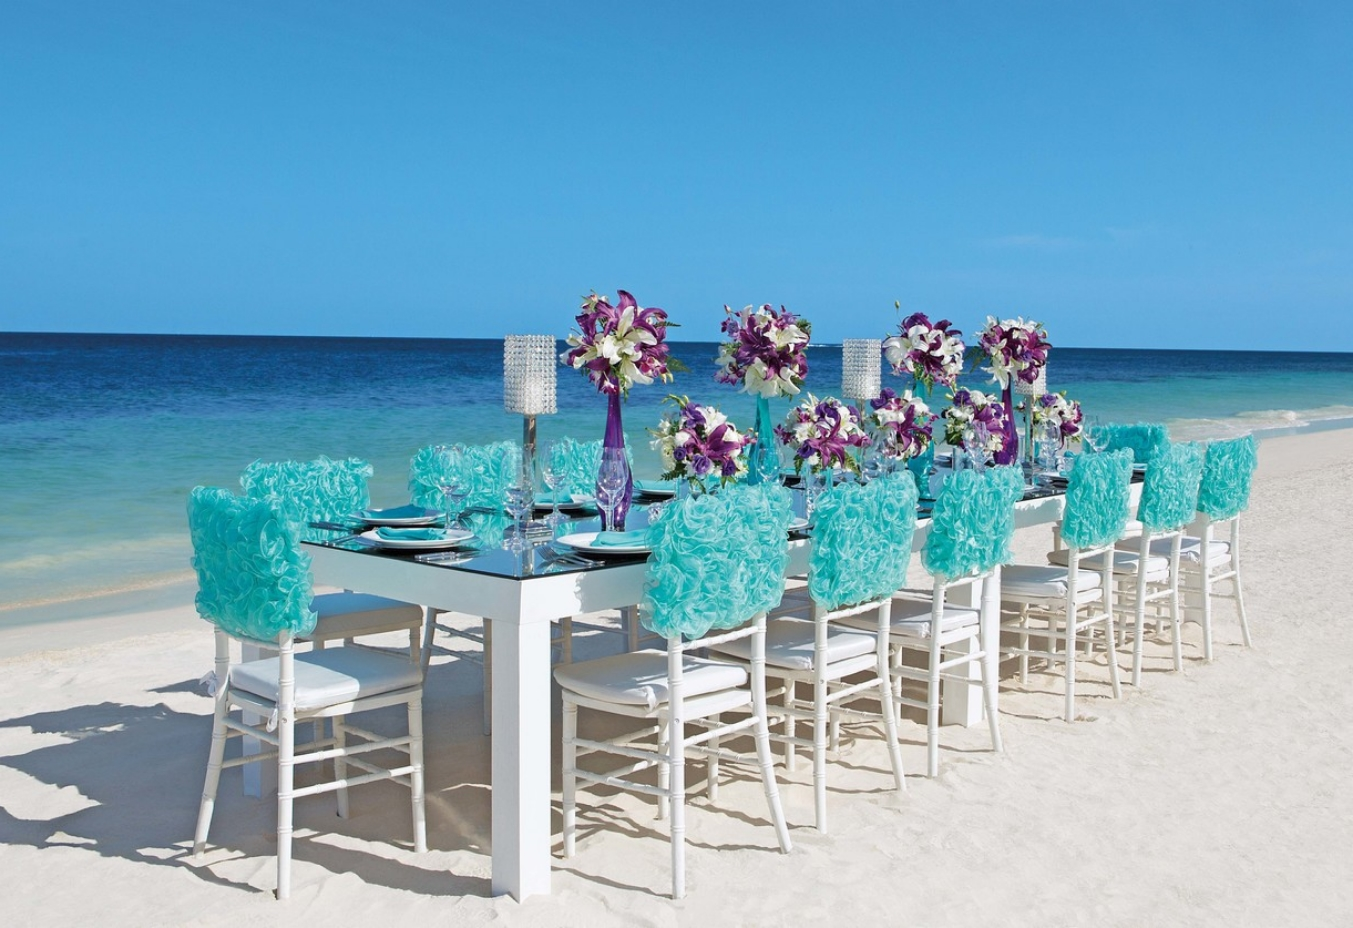 DREAMS_Wedding_Beach_1.jpg